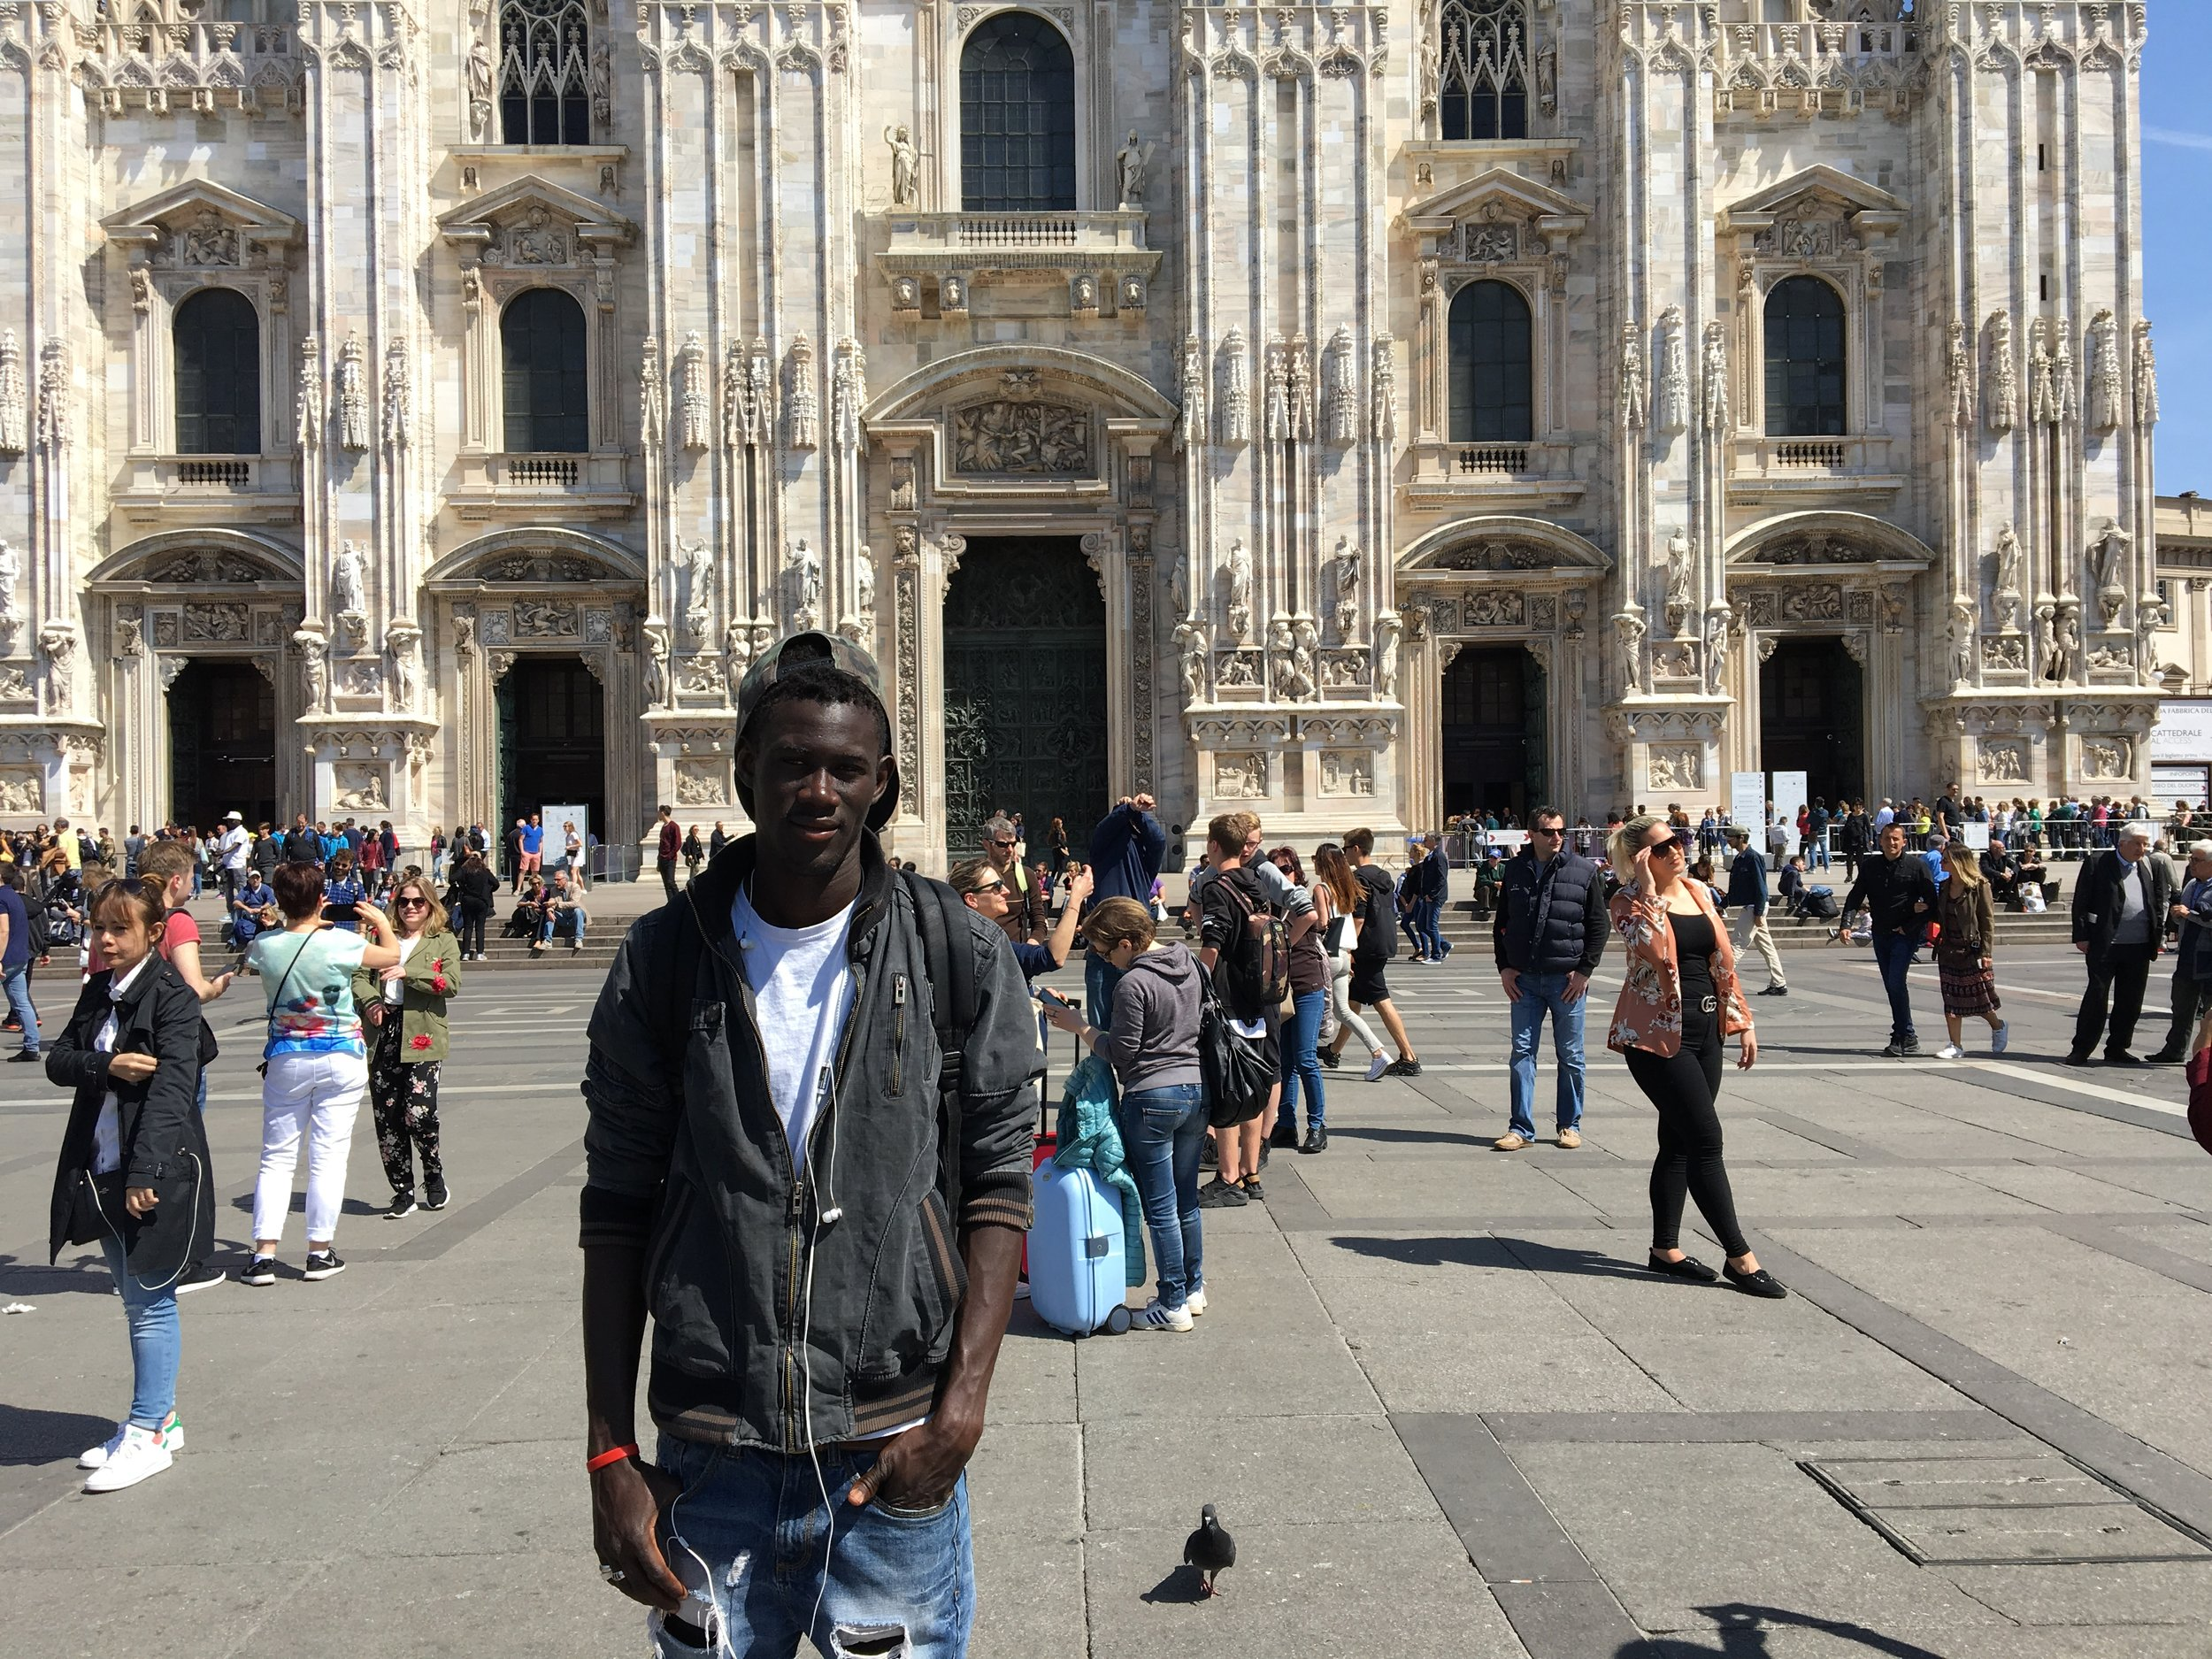 Baye at the piazza del duomo, Milan, Italy. April, 2017. © Pamela Kerpius